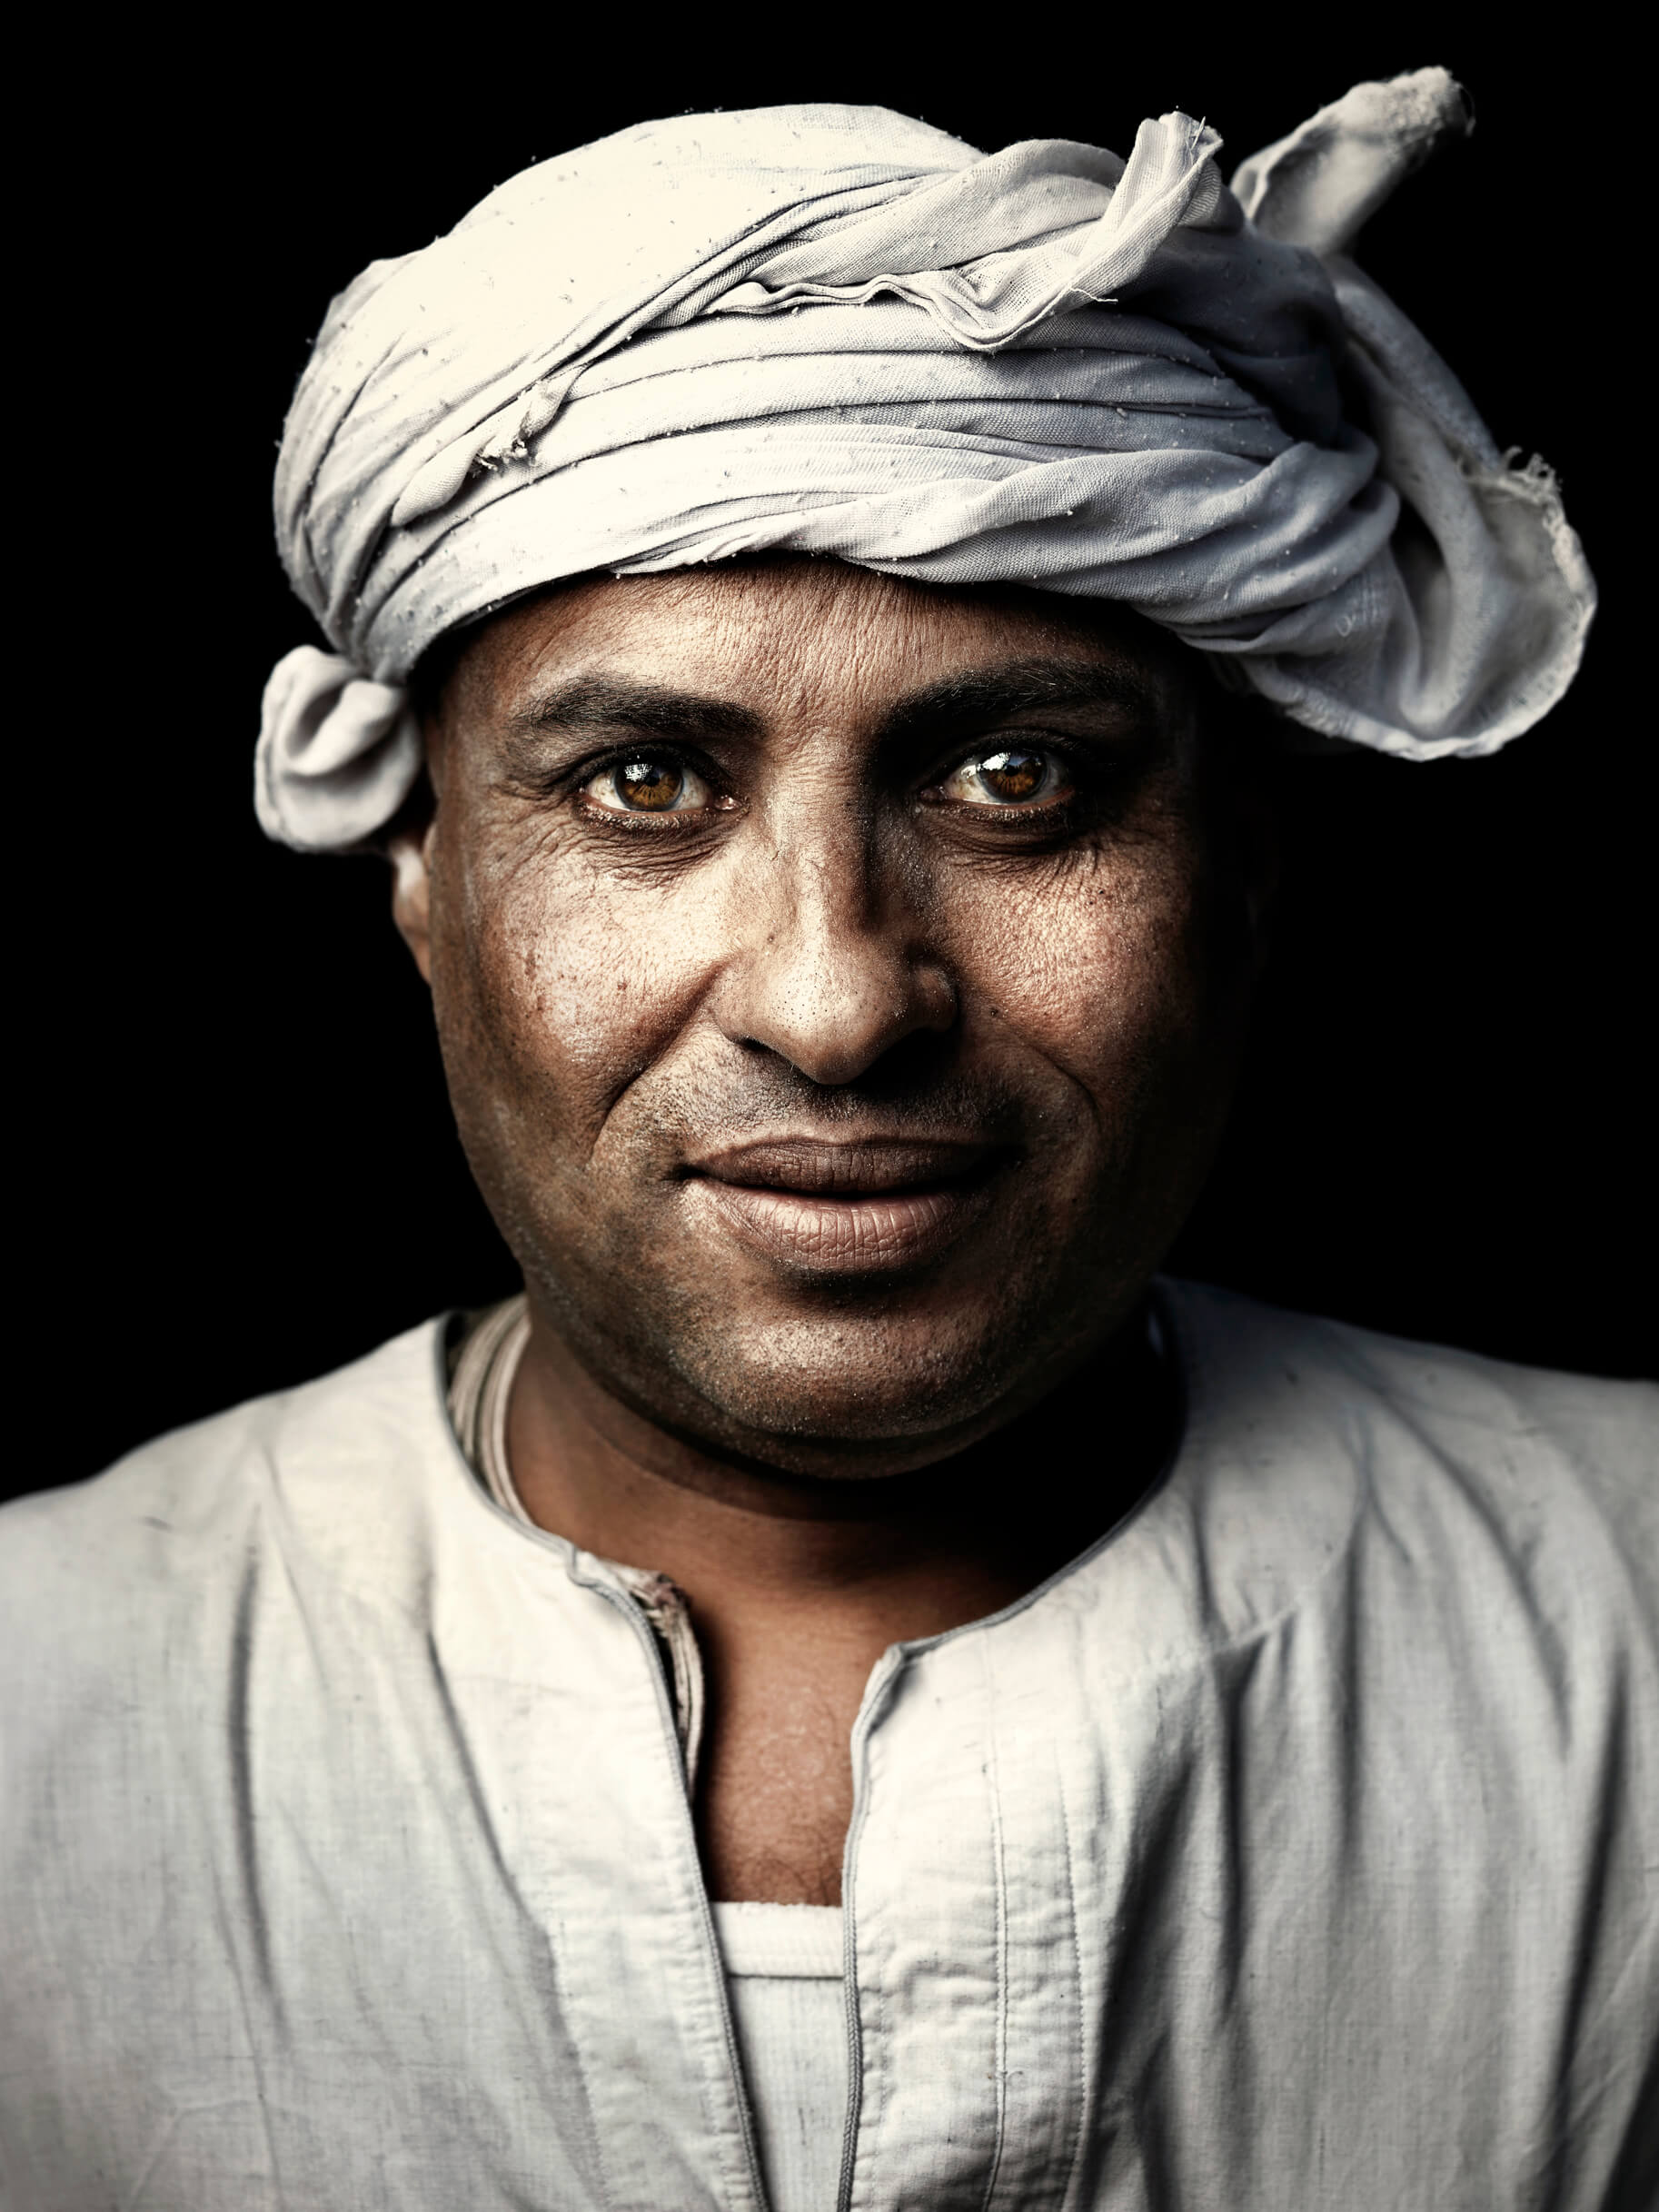 Egypt_People_Portraits_0038